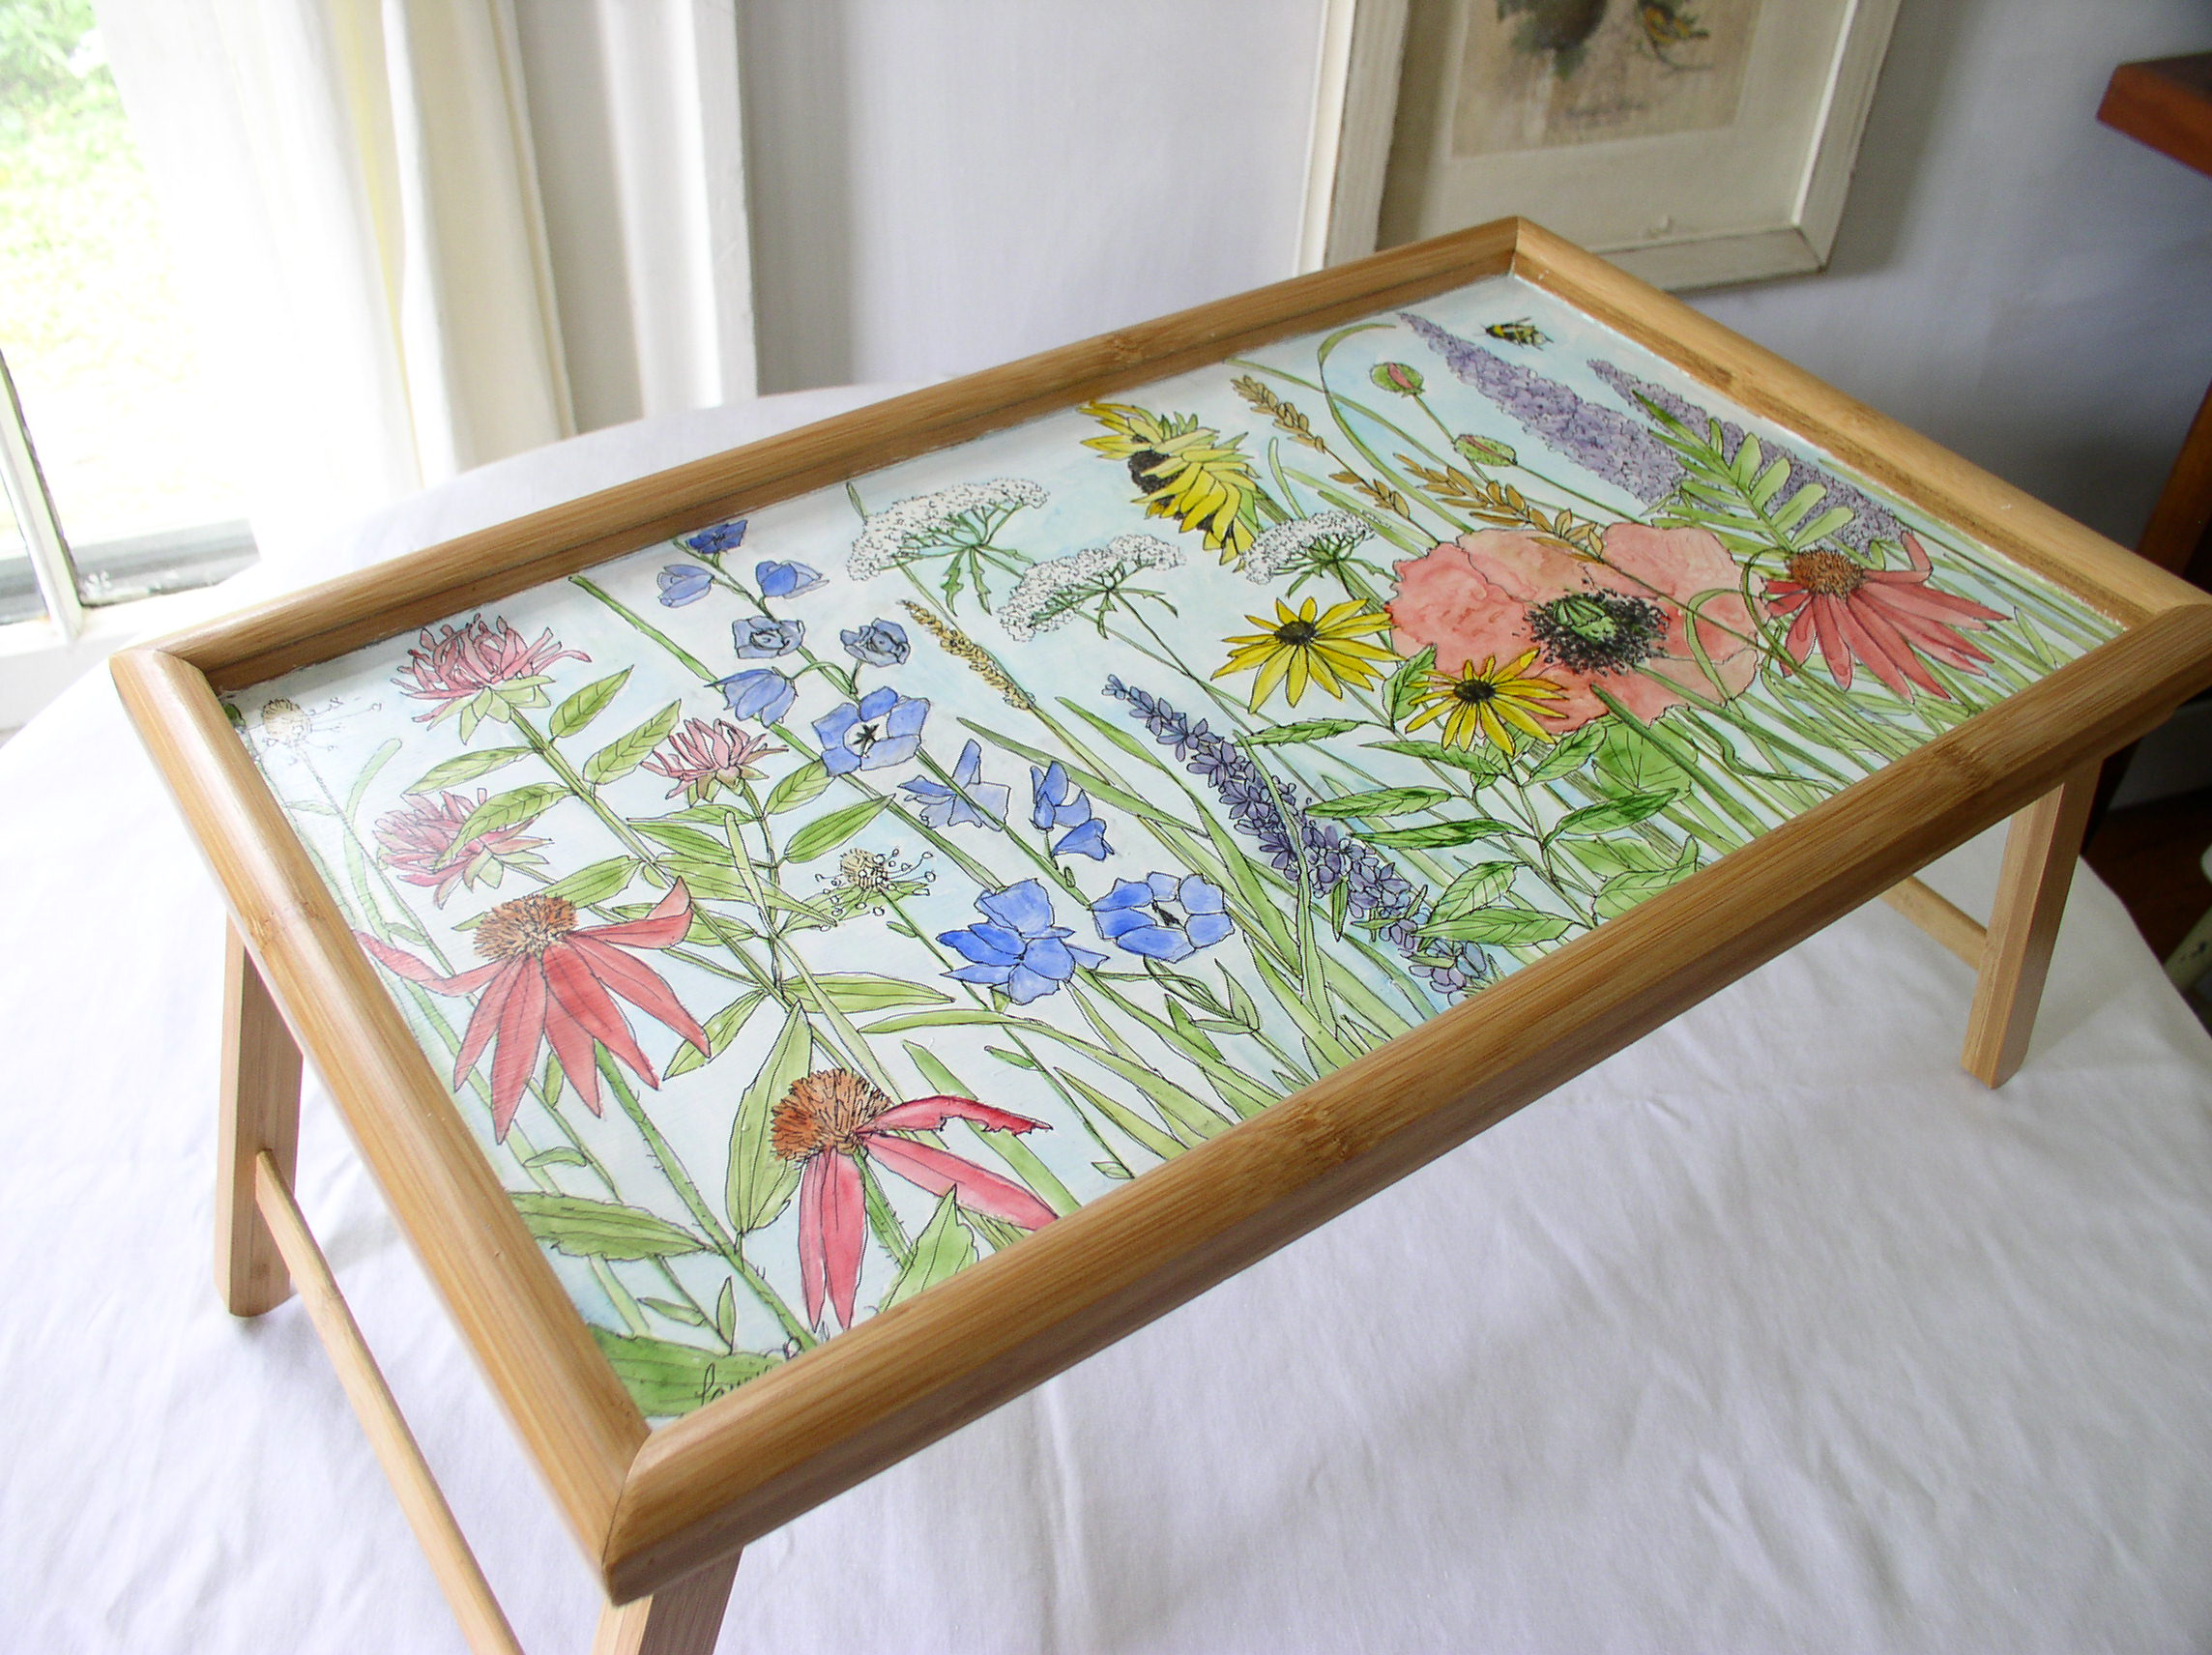 Farmhouse Watercolor Painted Furniture Bed Tray with Garden Flowers